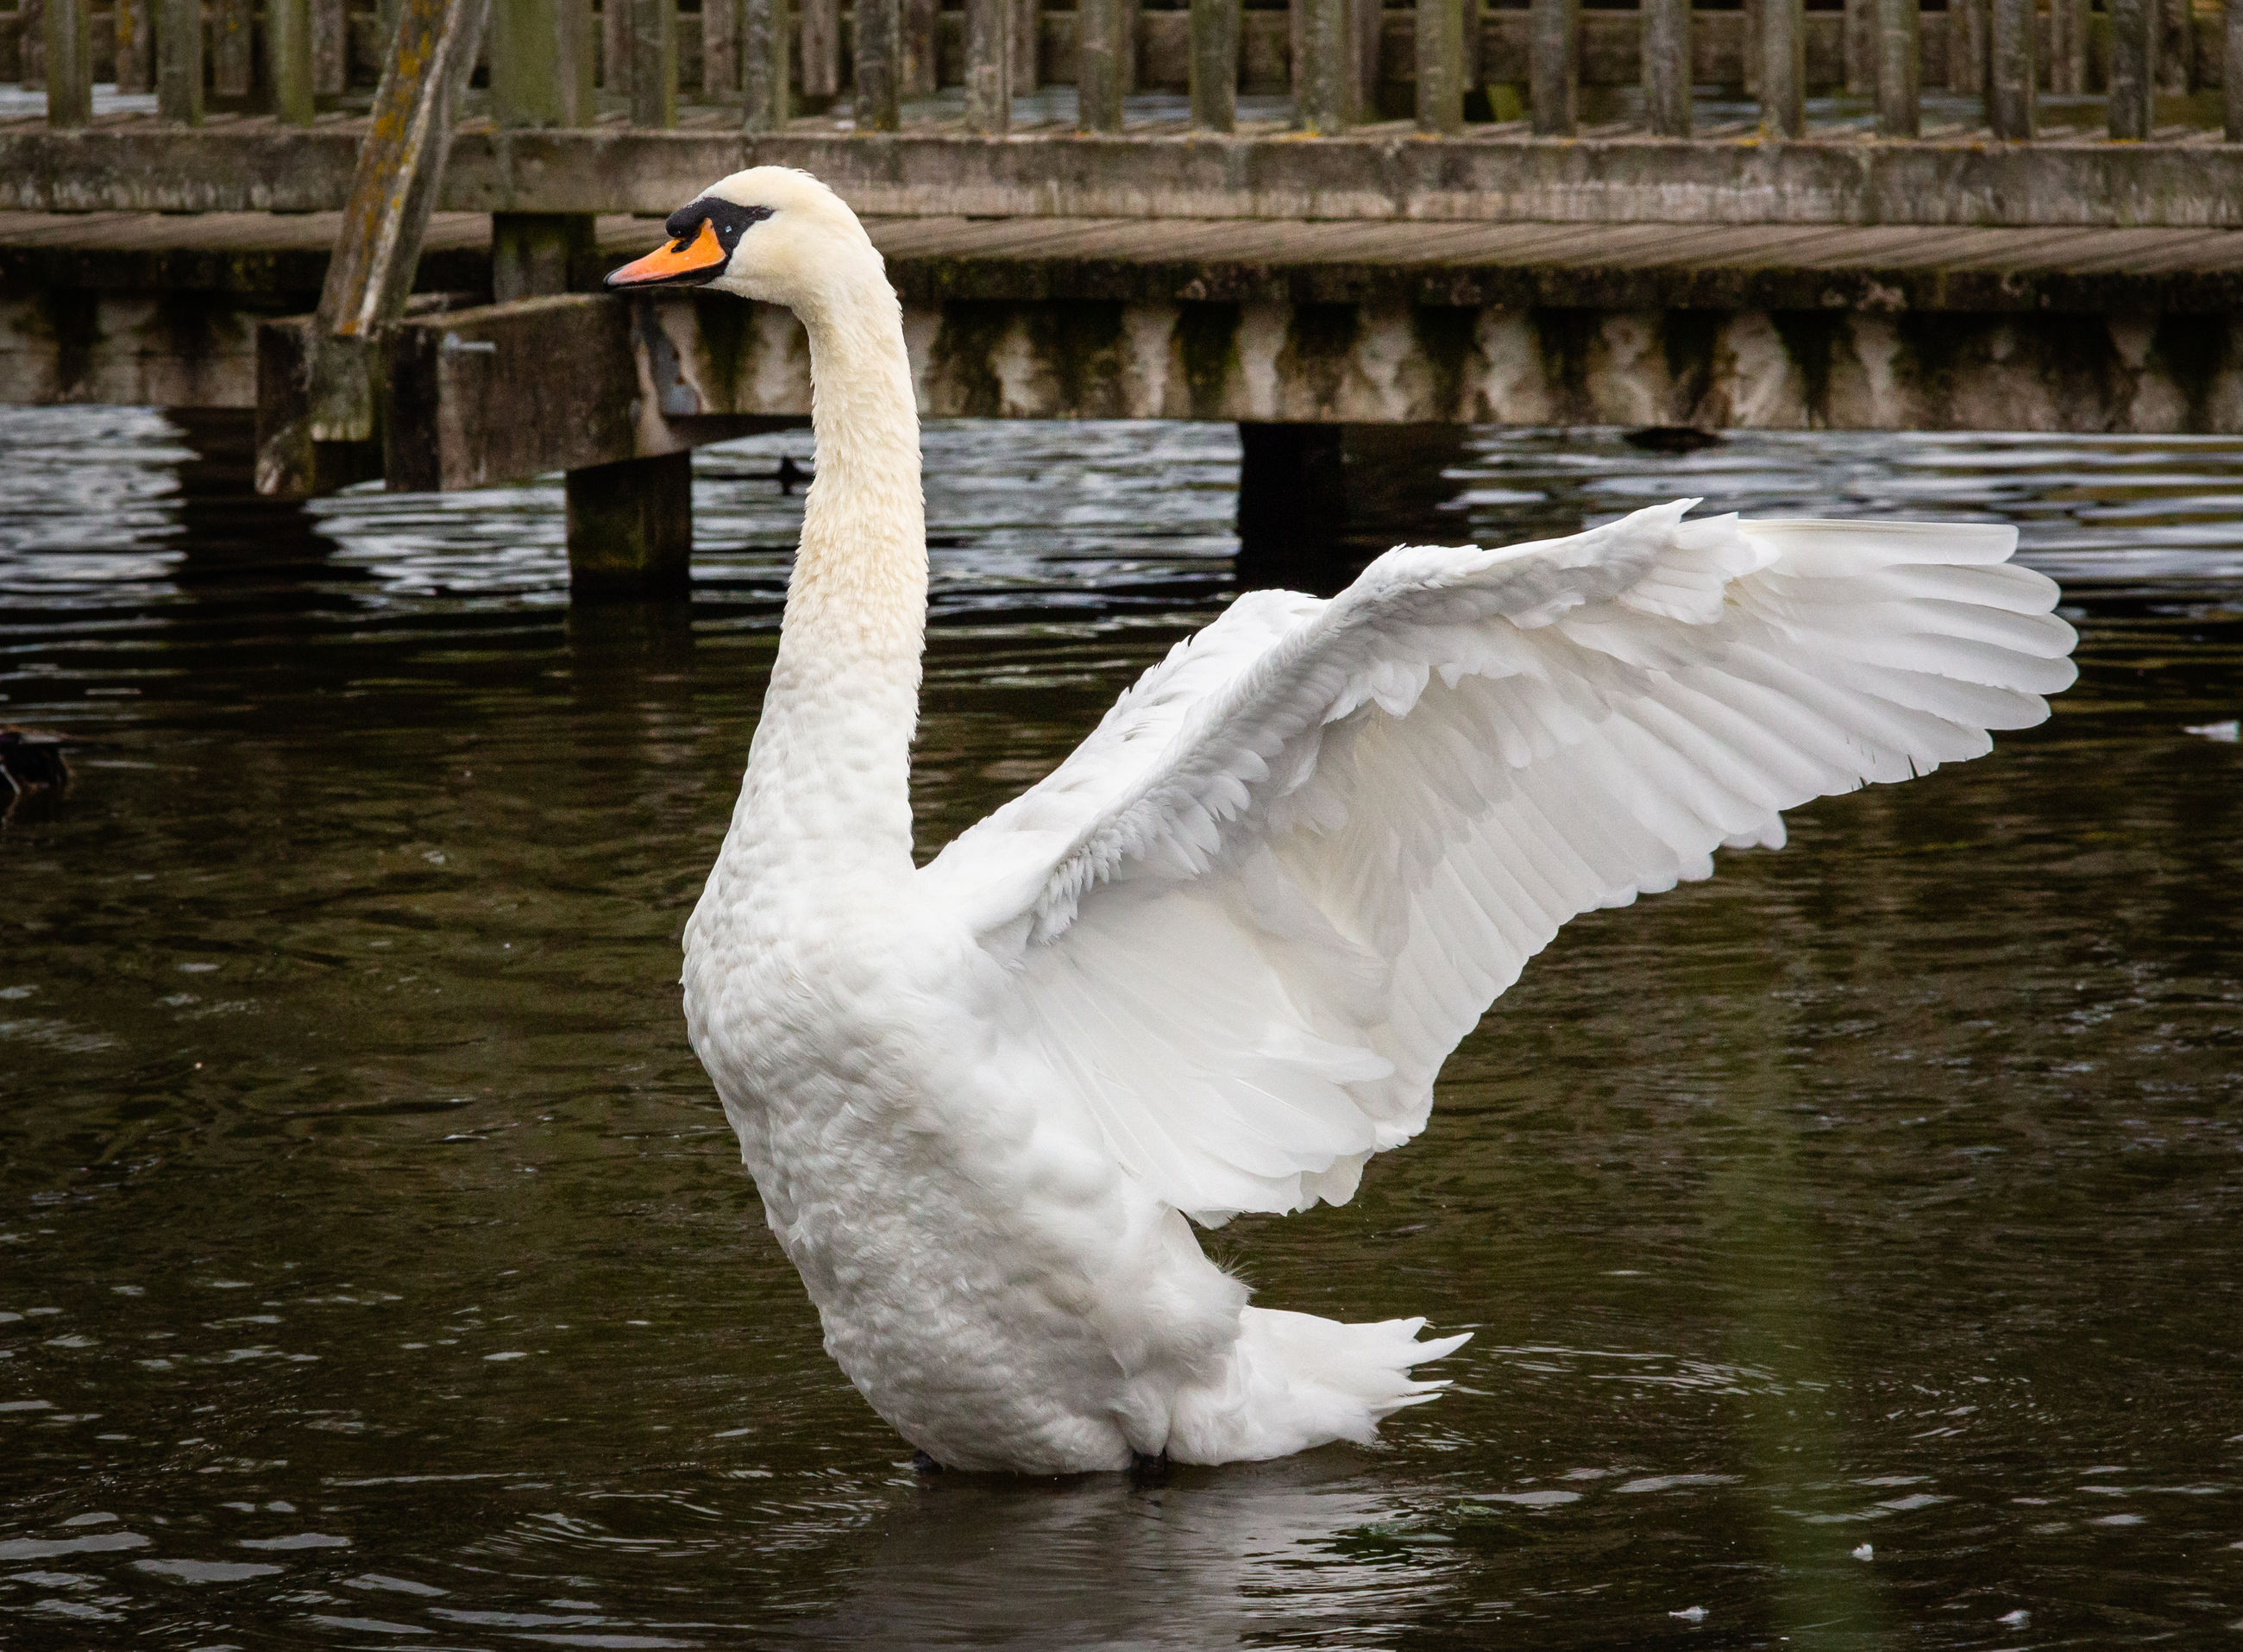 water, vertebrate, animal themes, bird, animals in the wild, animal, animal wildlife, lake, swan, one animal, white color, water bird, zoology, day, nature, waterfront, spread wings, swimming, no people, animal neck, flapping